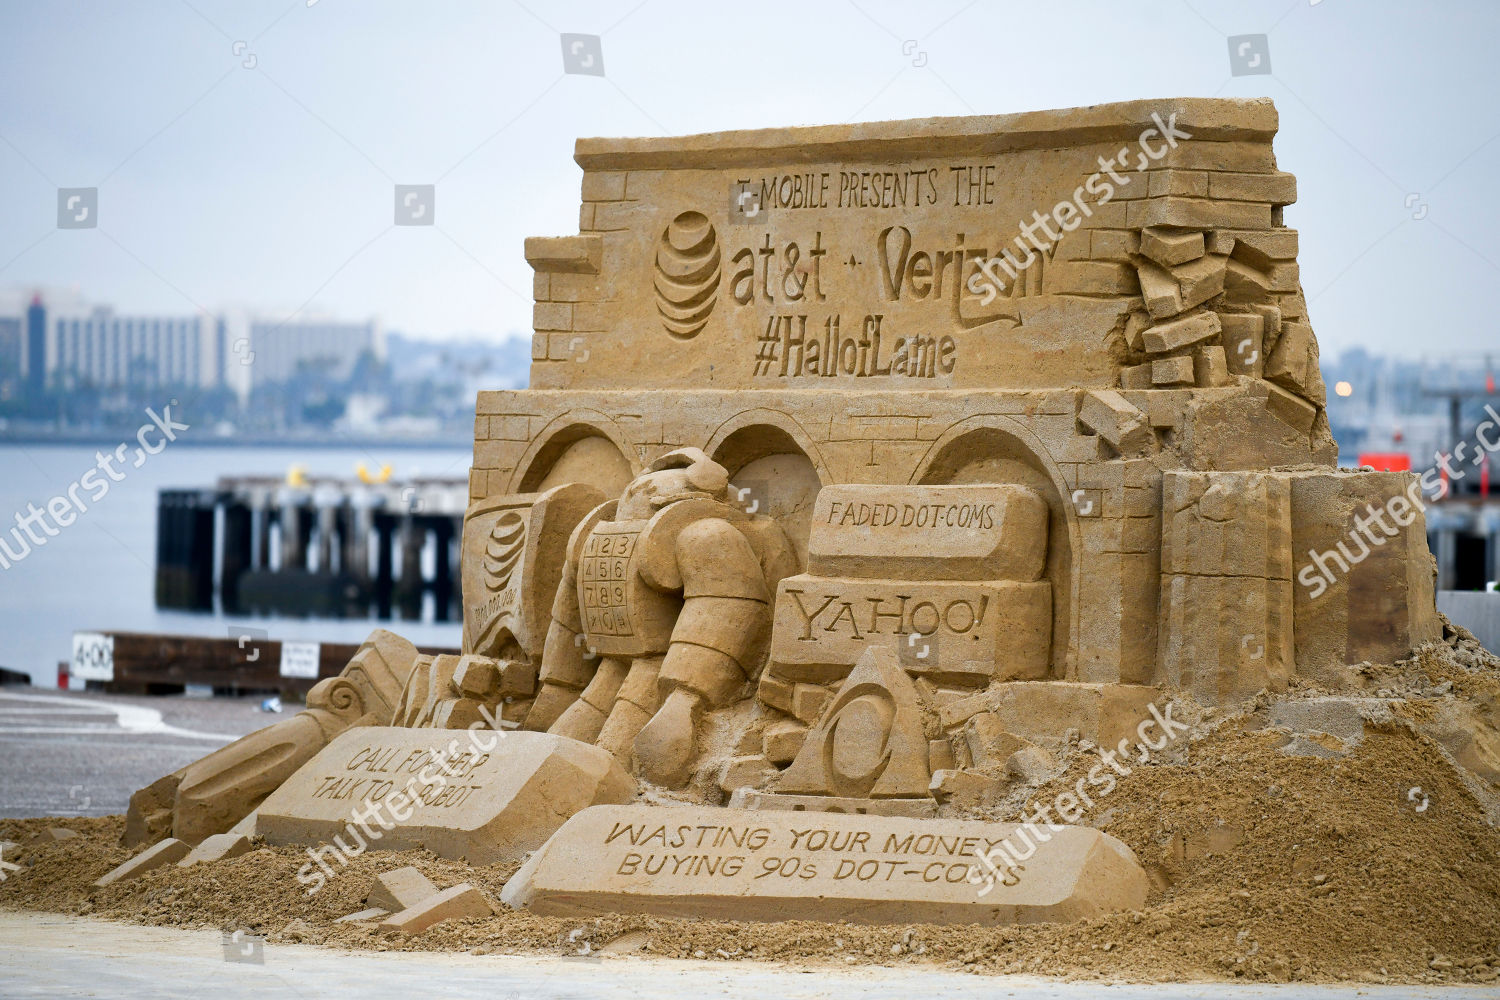 TMobile HallofLame sand sculpture sits on Broadway Editorial